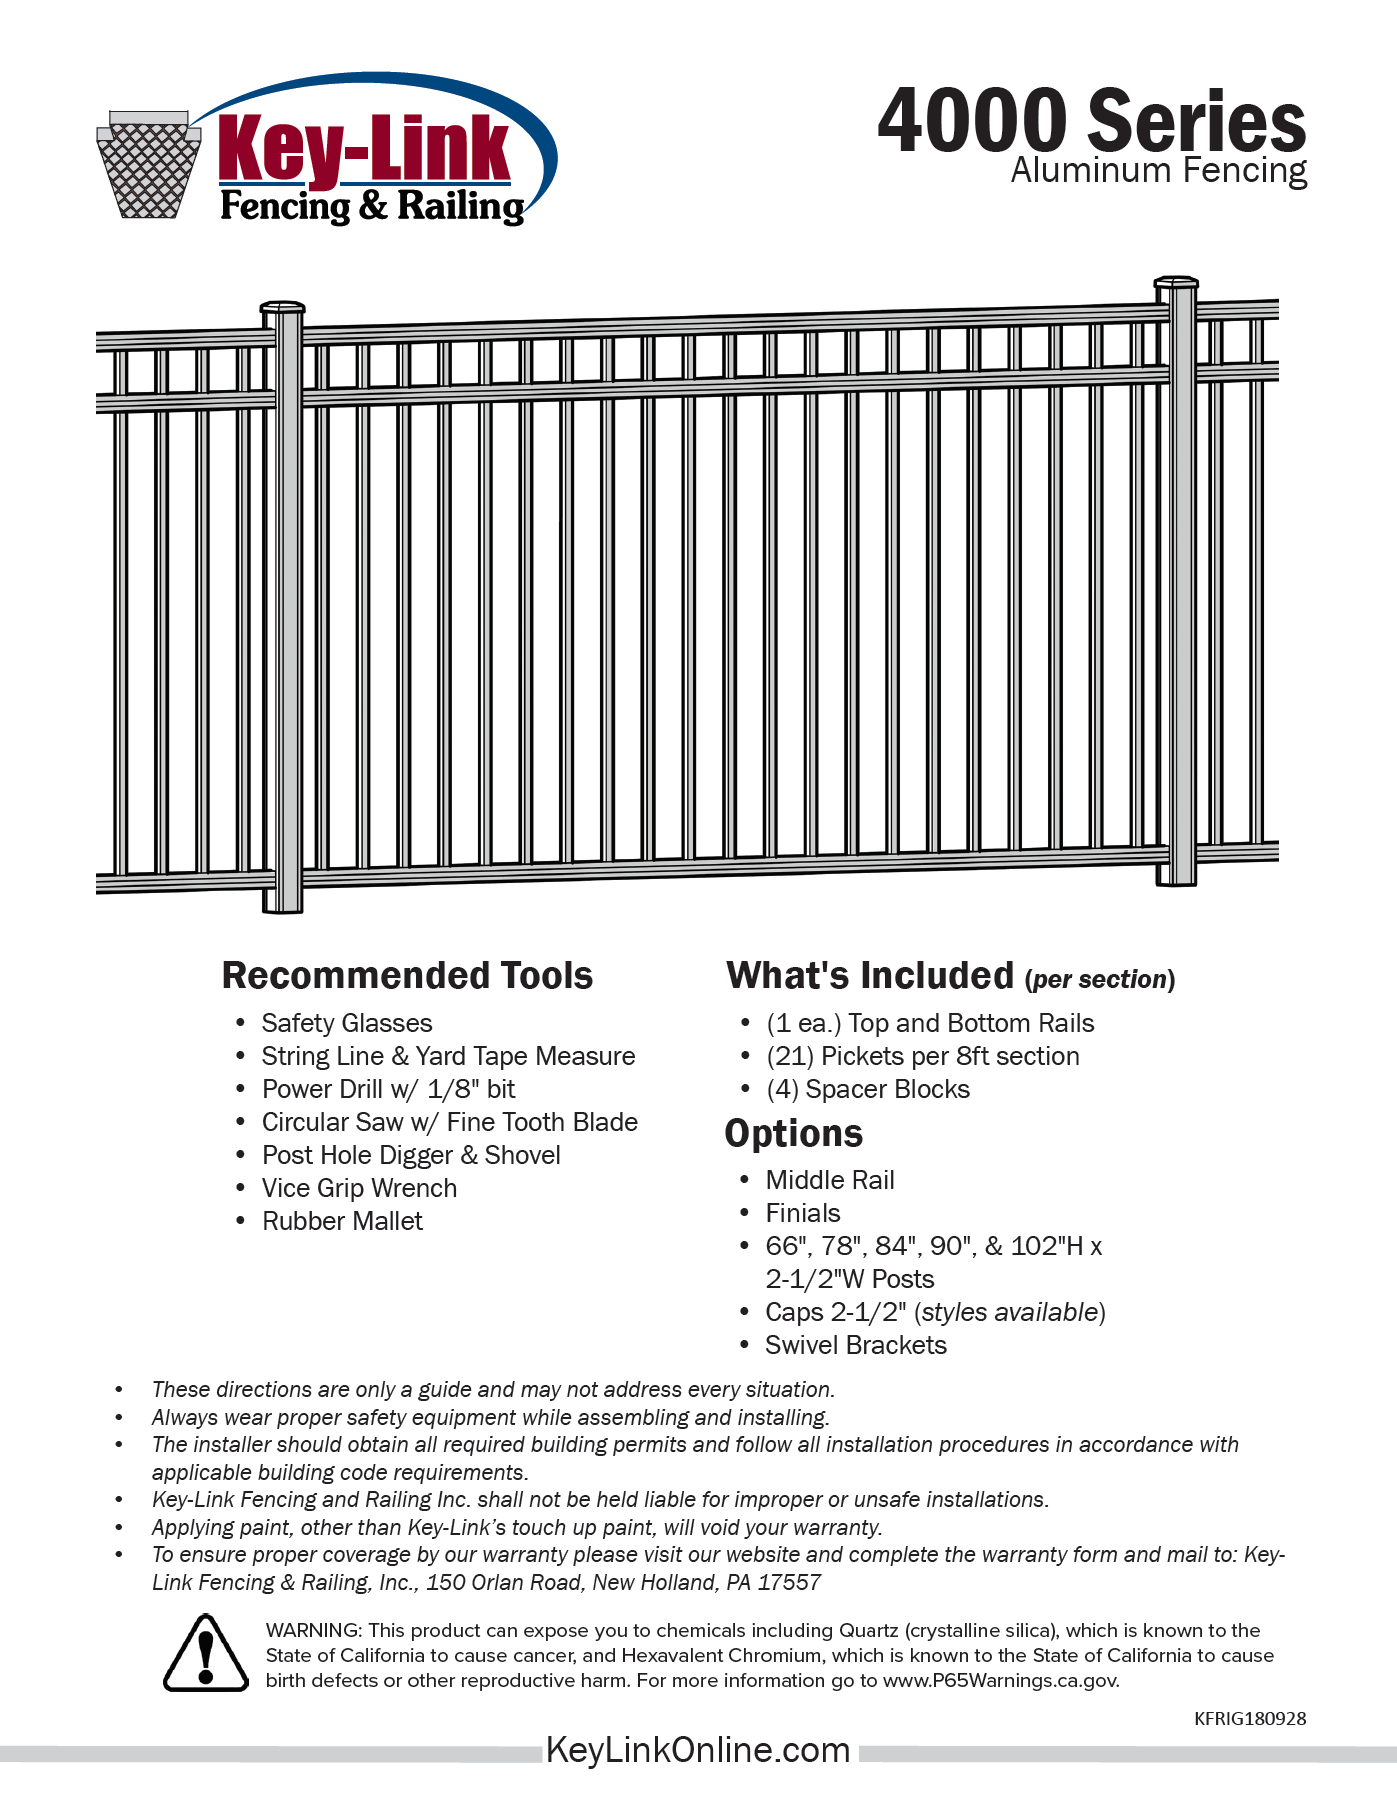 Key-Link Fencing & Railing Downloadable Resources